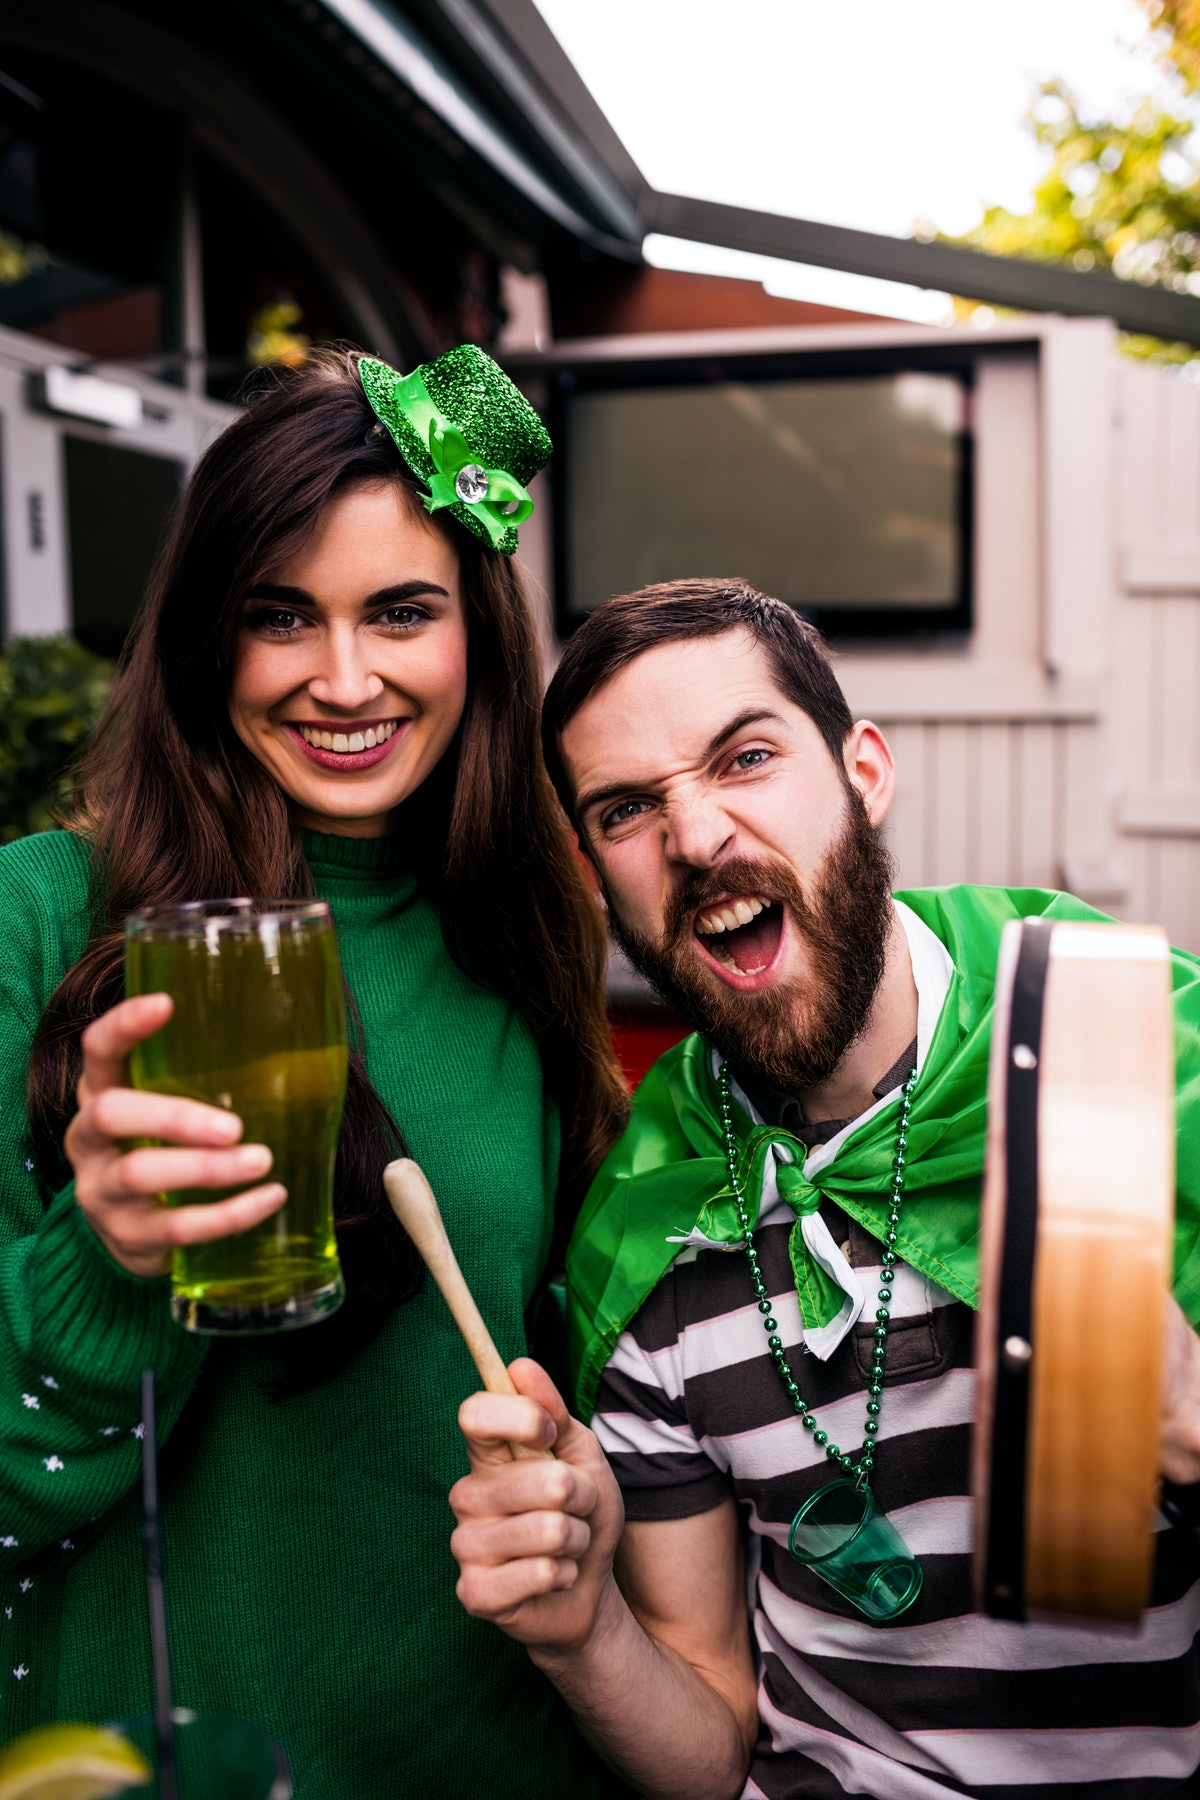 A young couple hangs out in a bar on St. Patrick's Day and drinks green beer.